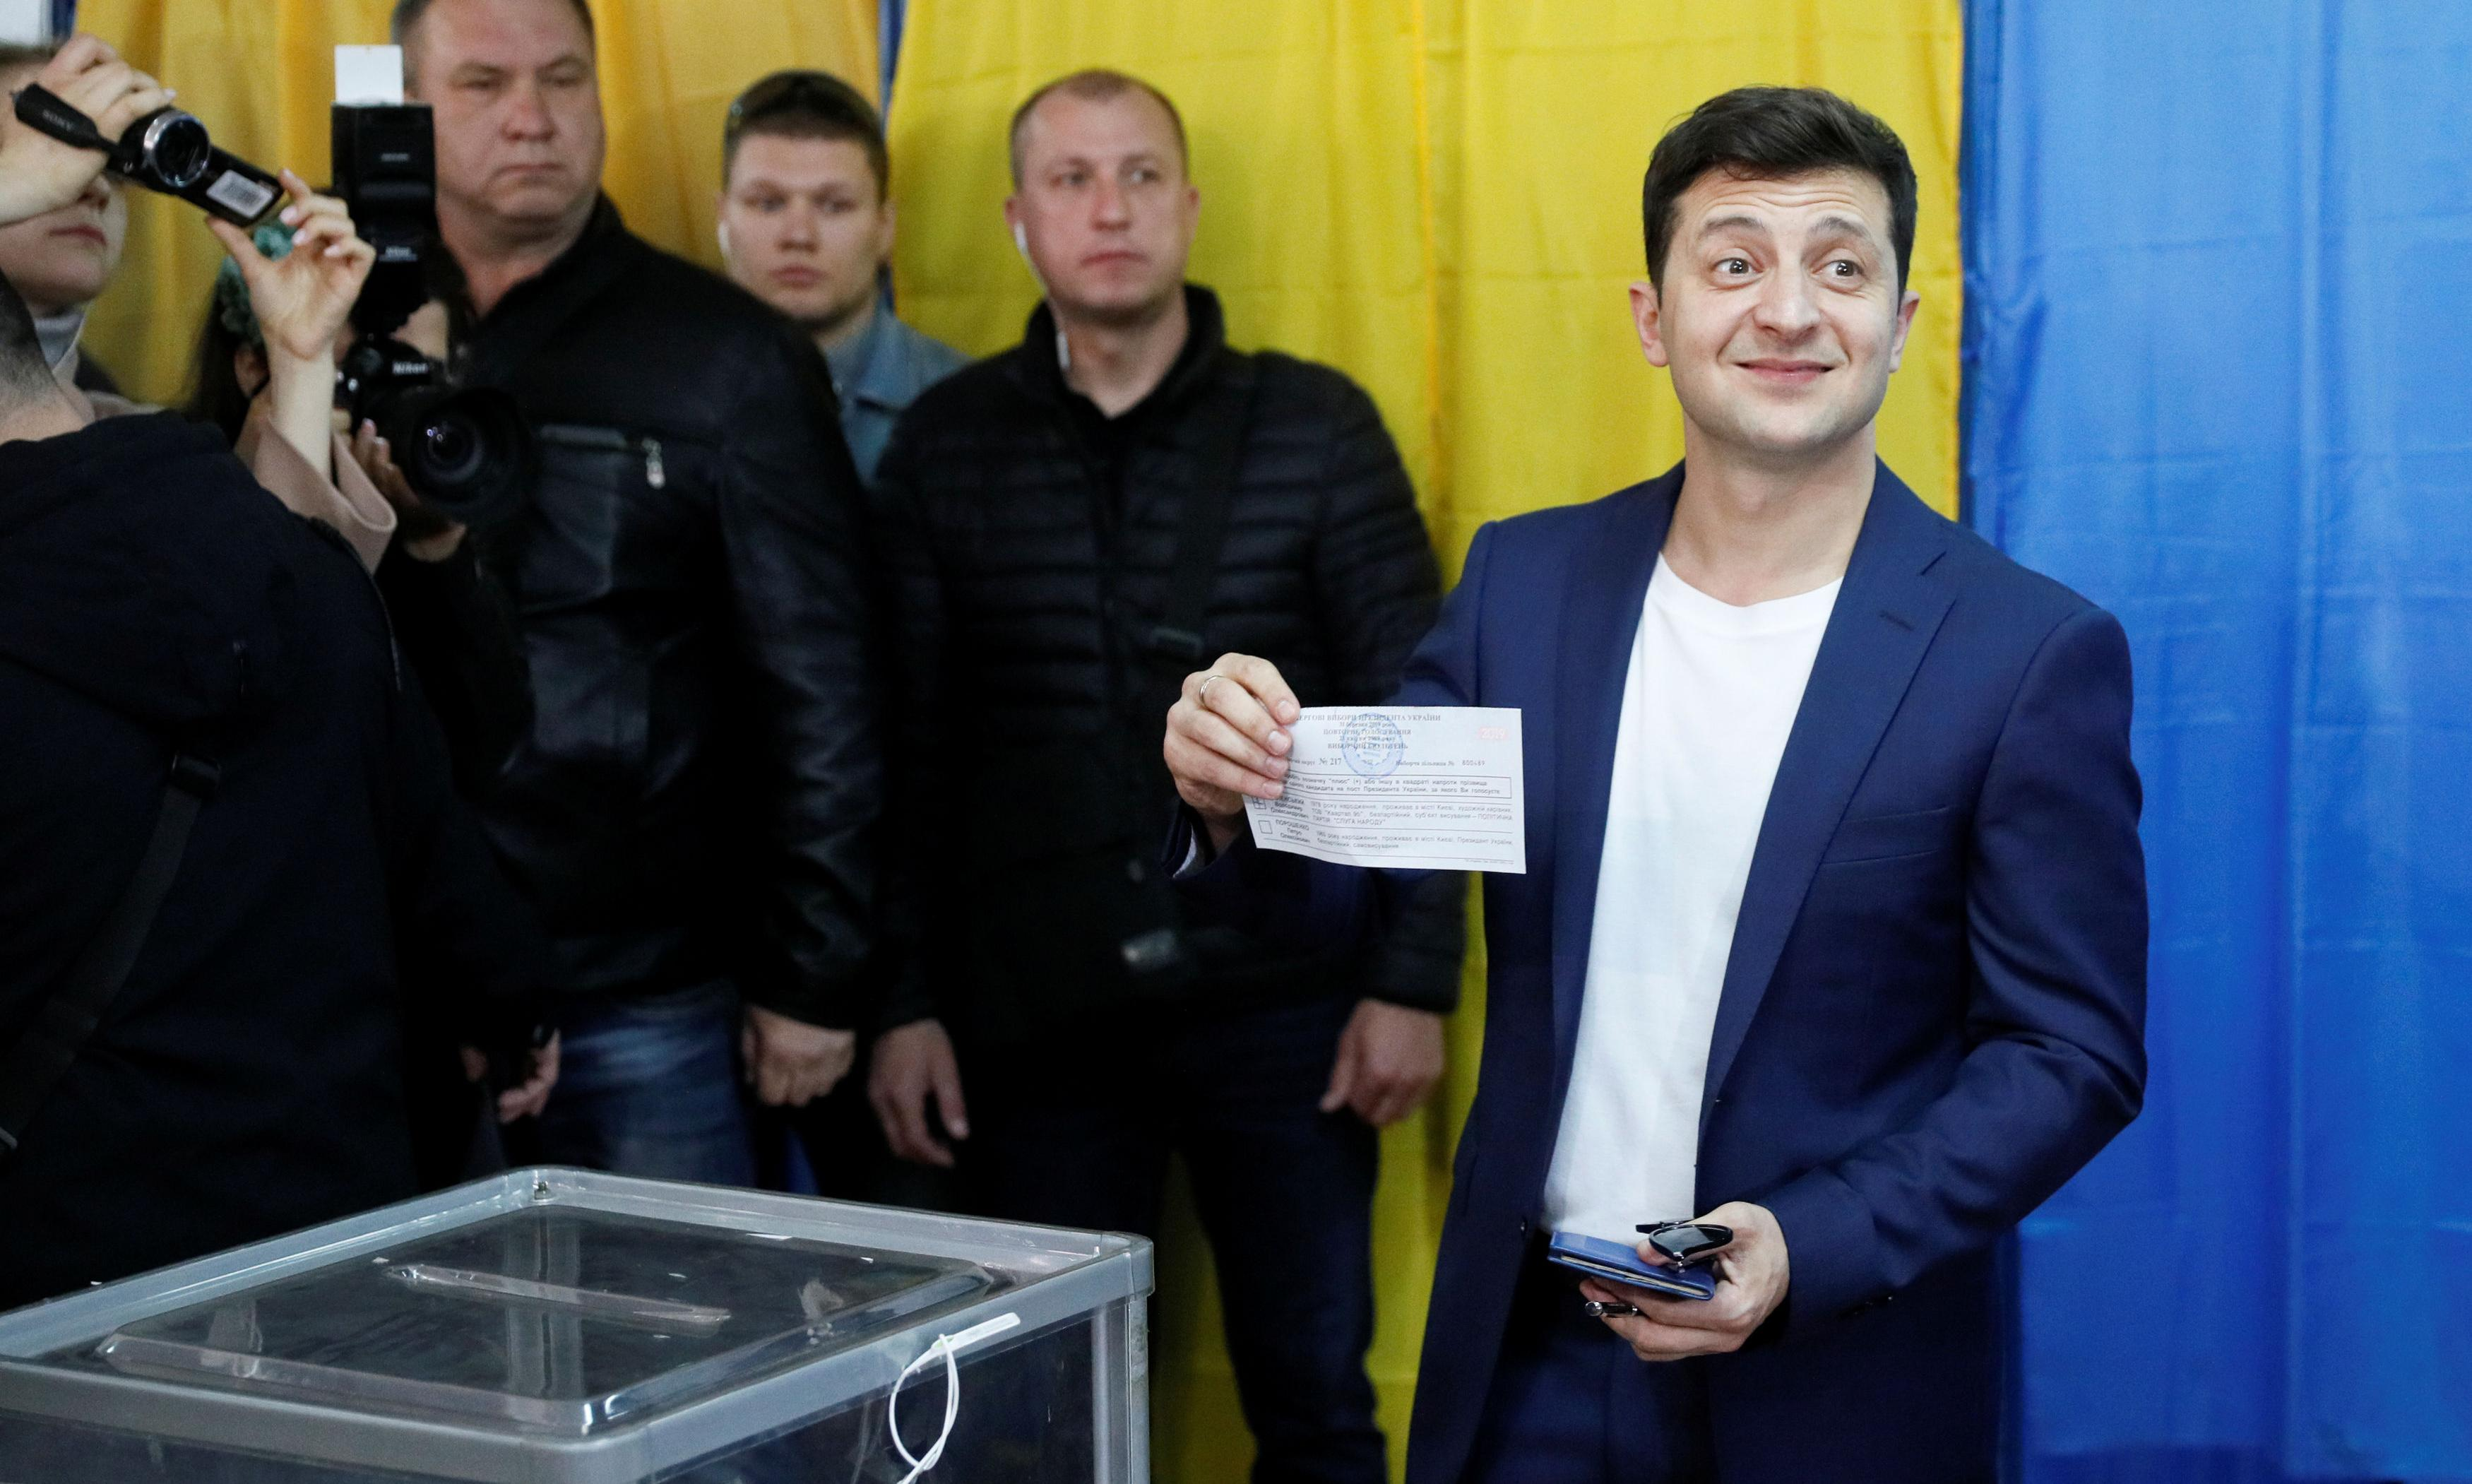 Ukraine elections: comedian leads polls as final round of voting begins